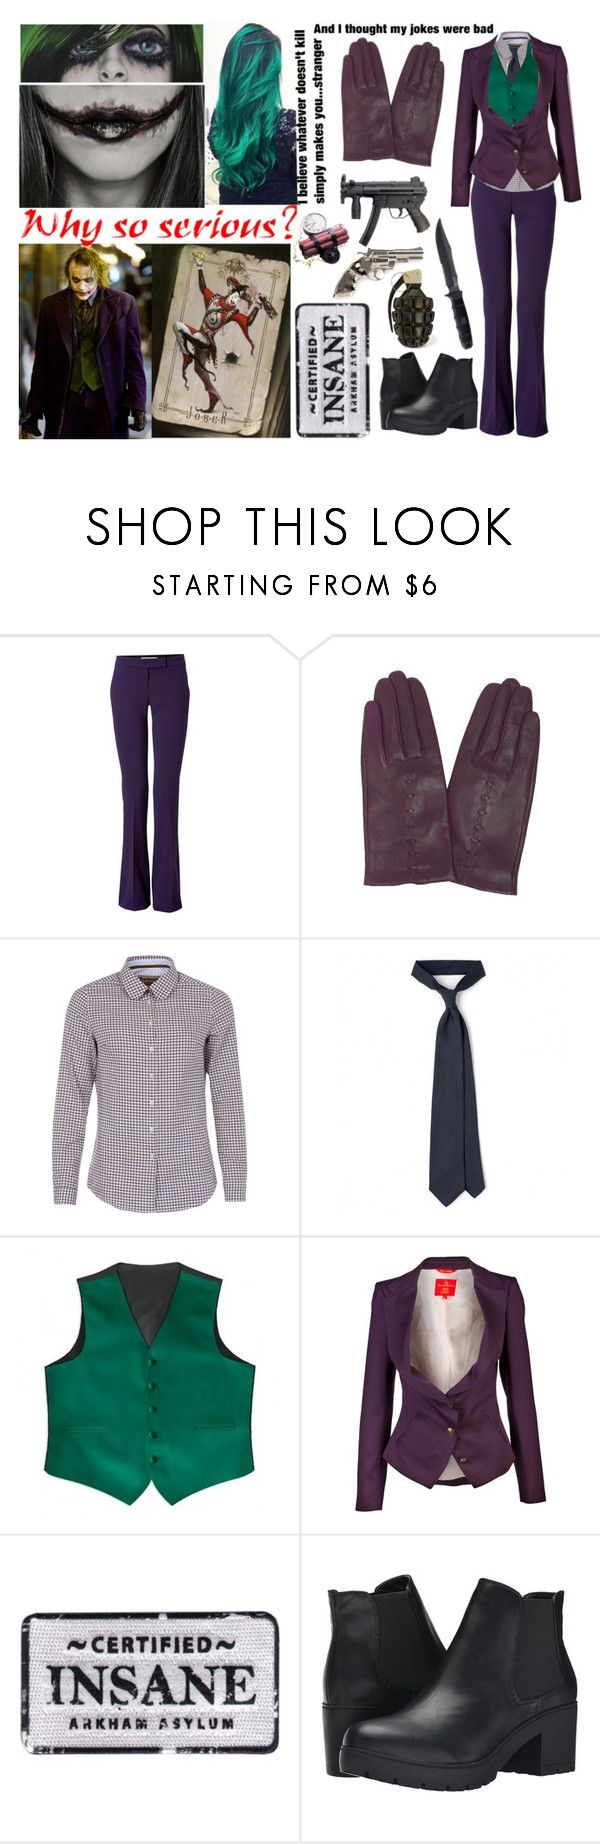 """""""Female Joker"""" by bellageorgia ❤ liked on Polyvore featuring Emilio Pucci, Dorothy Perkins, Barbour, Drakes London, Vivienne Westwood Red Label, Steve Madden and Yves Saint Laurent"""